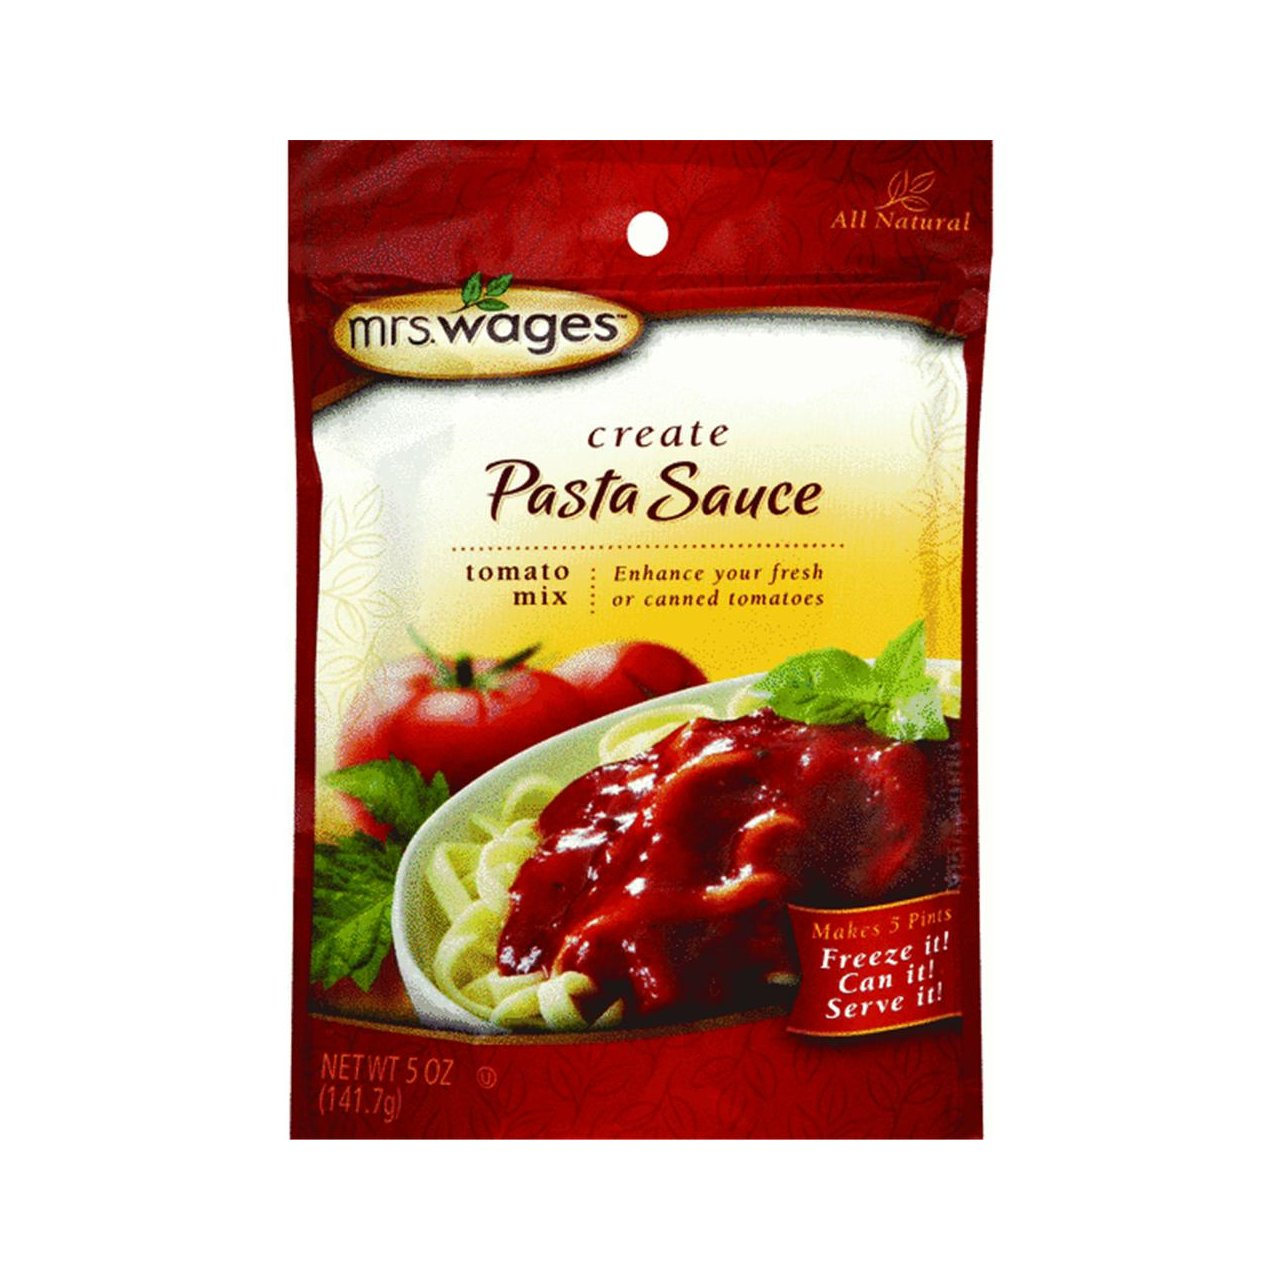 Mrs. Wages ALL NATURAL Pasta Sauce Tomato Canning Mix (5 Ounce Package)